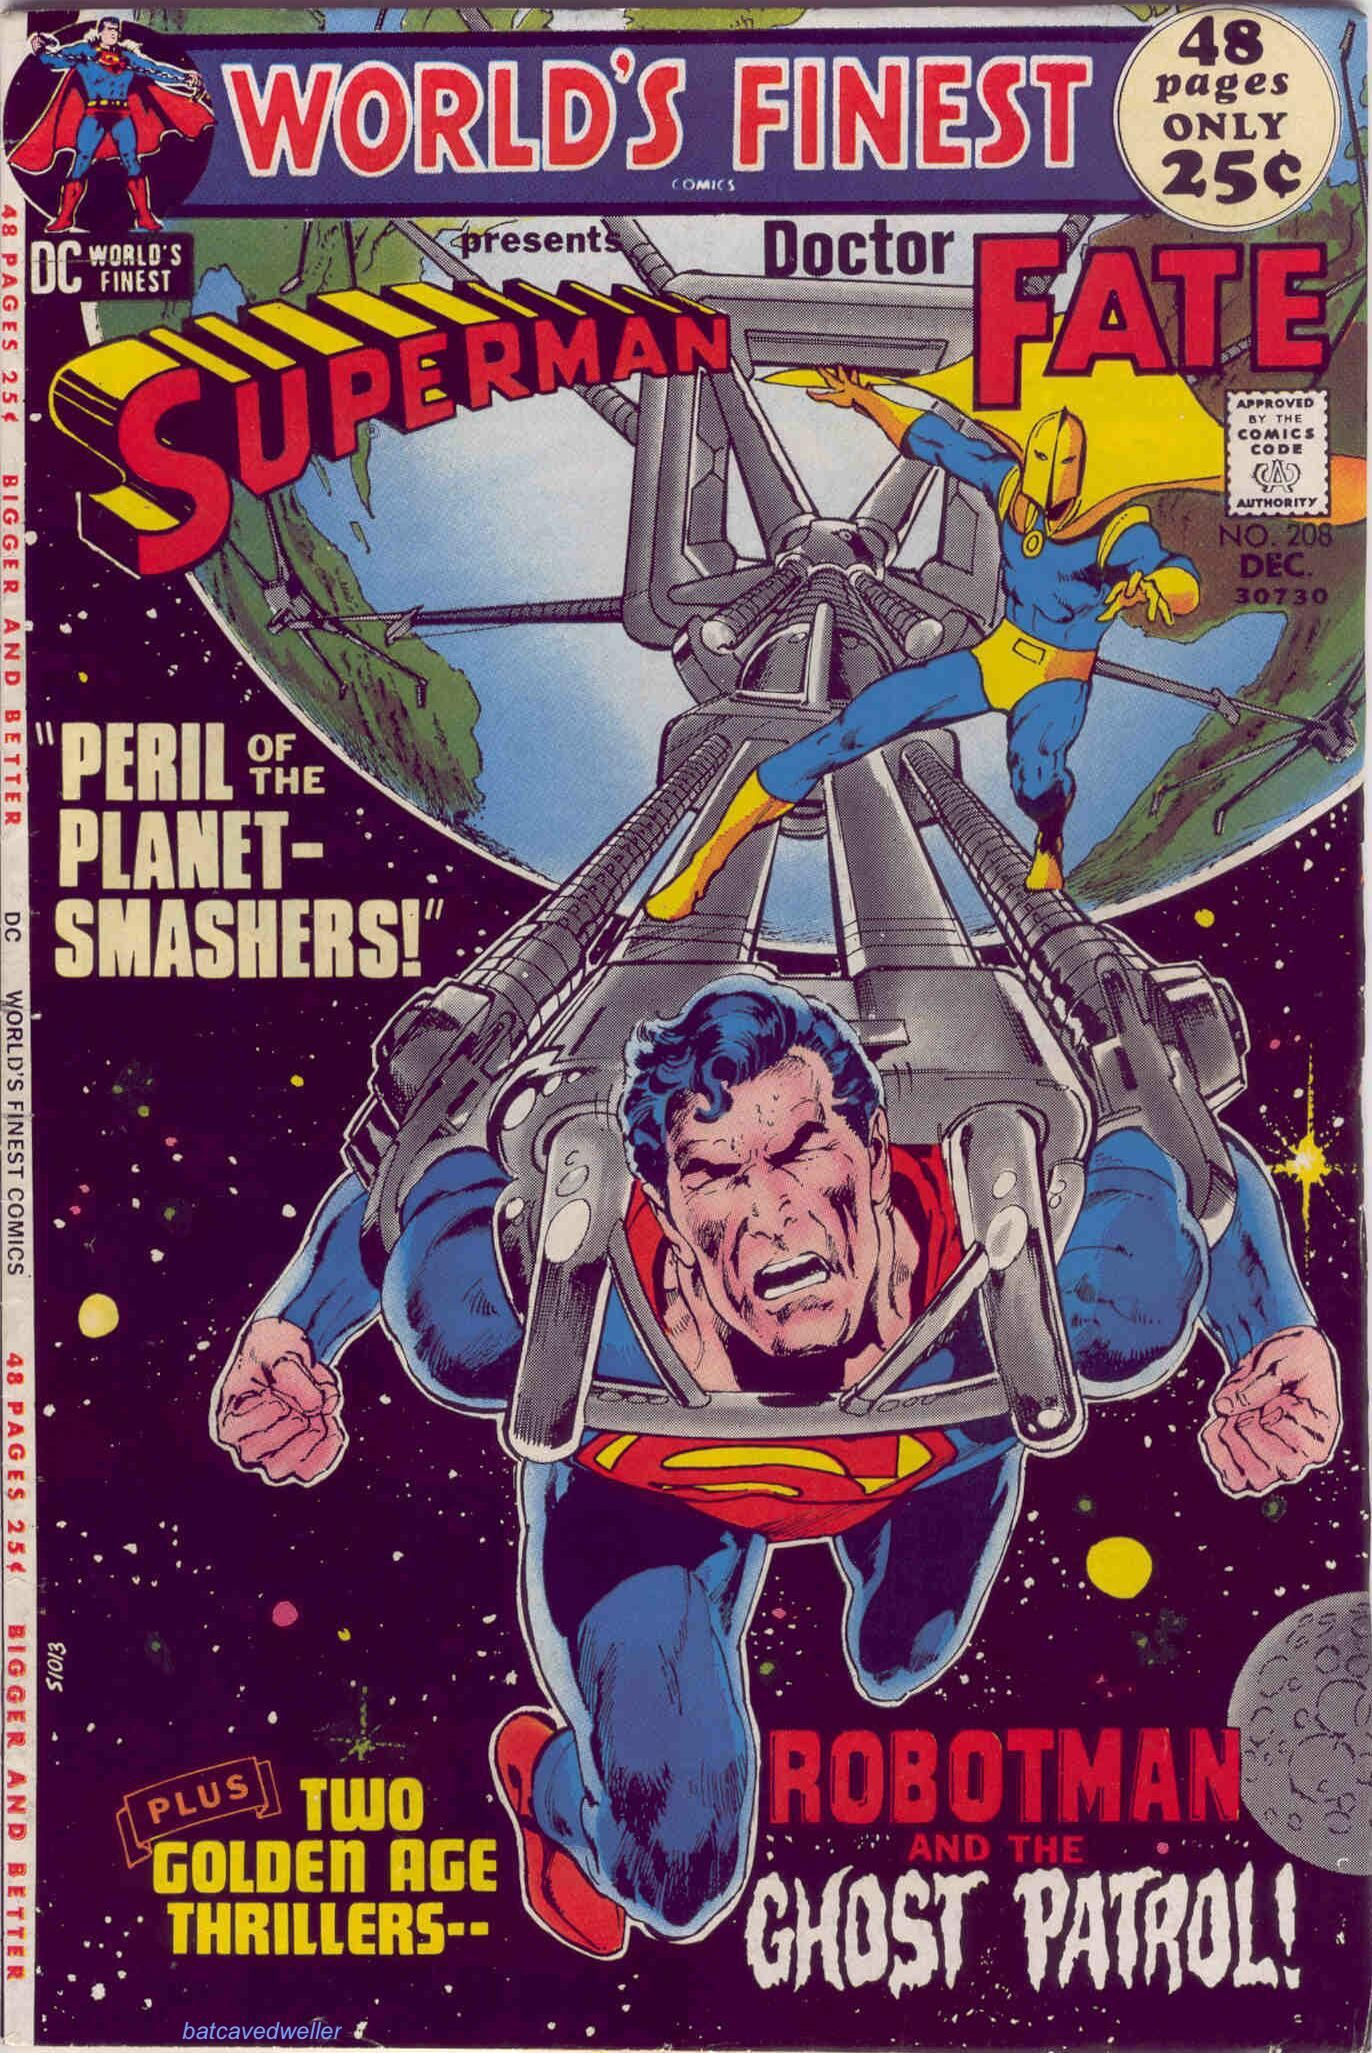 World's Finest (1971). Cover art: The exciting Neal Adams! Superman pulls the Earth! World's Finest